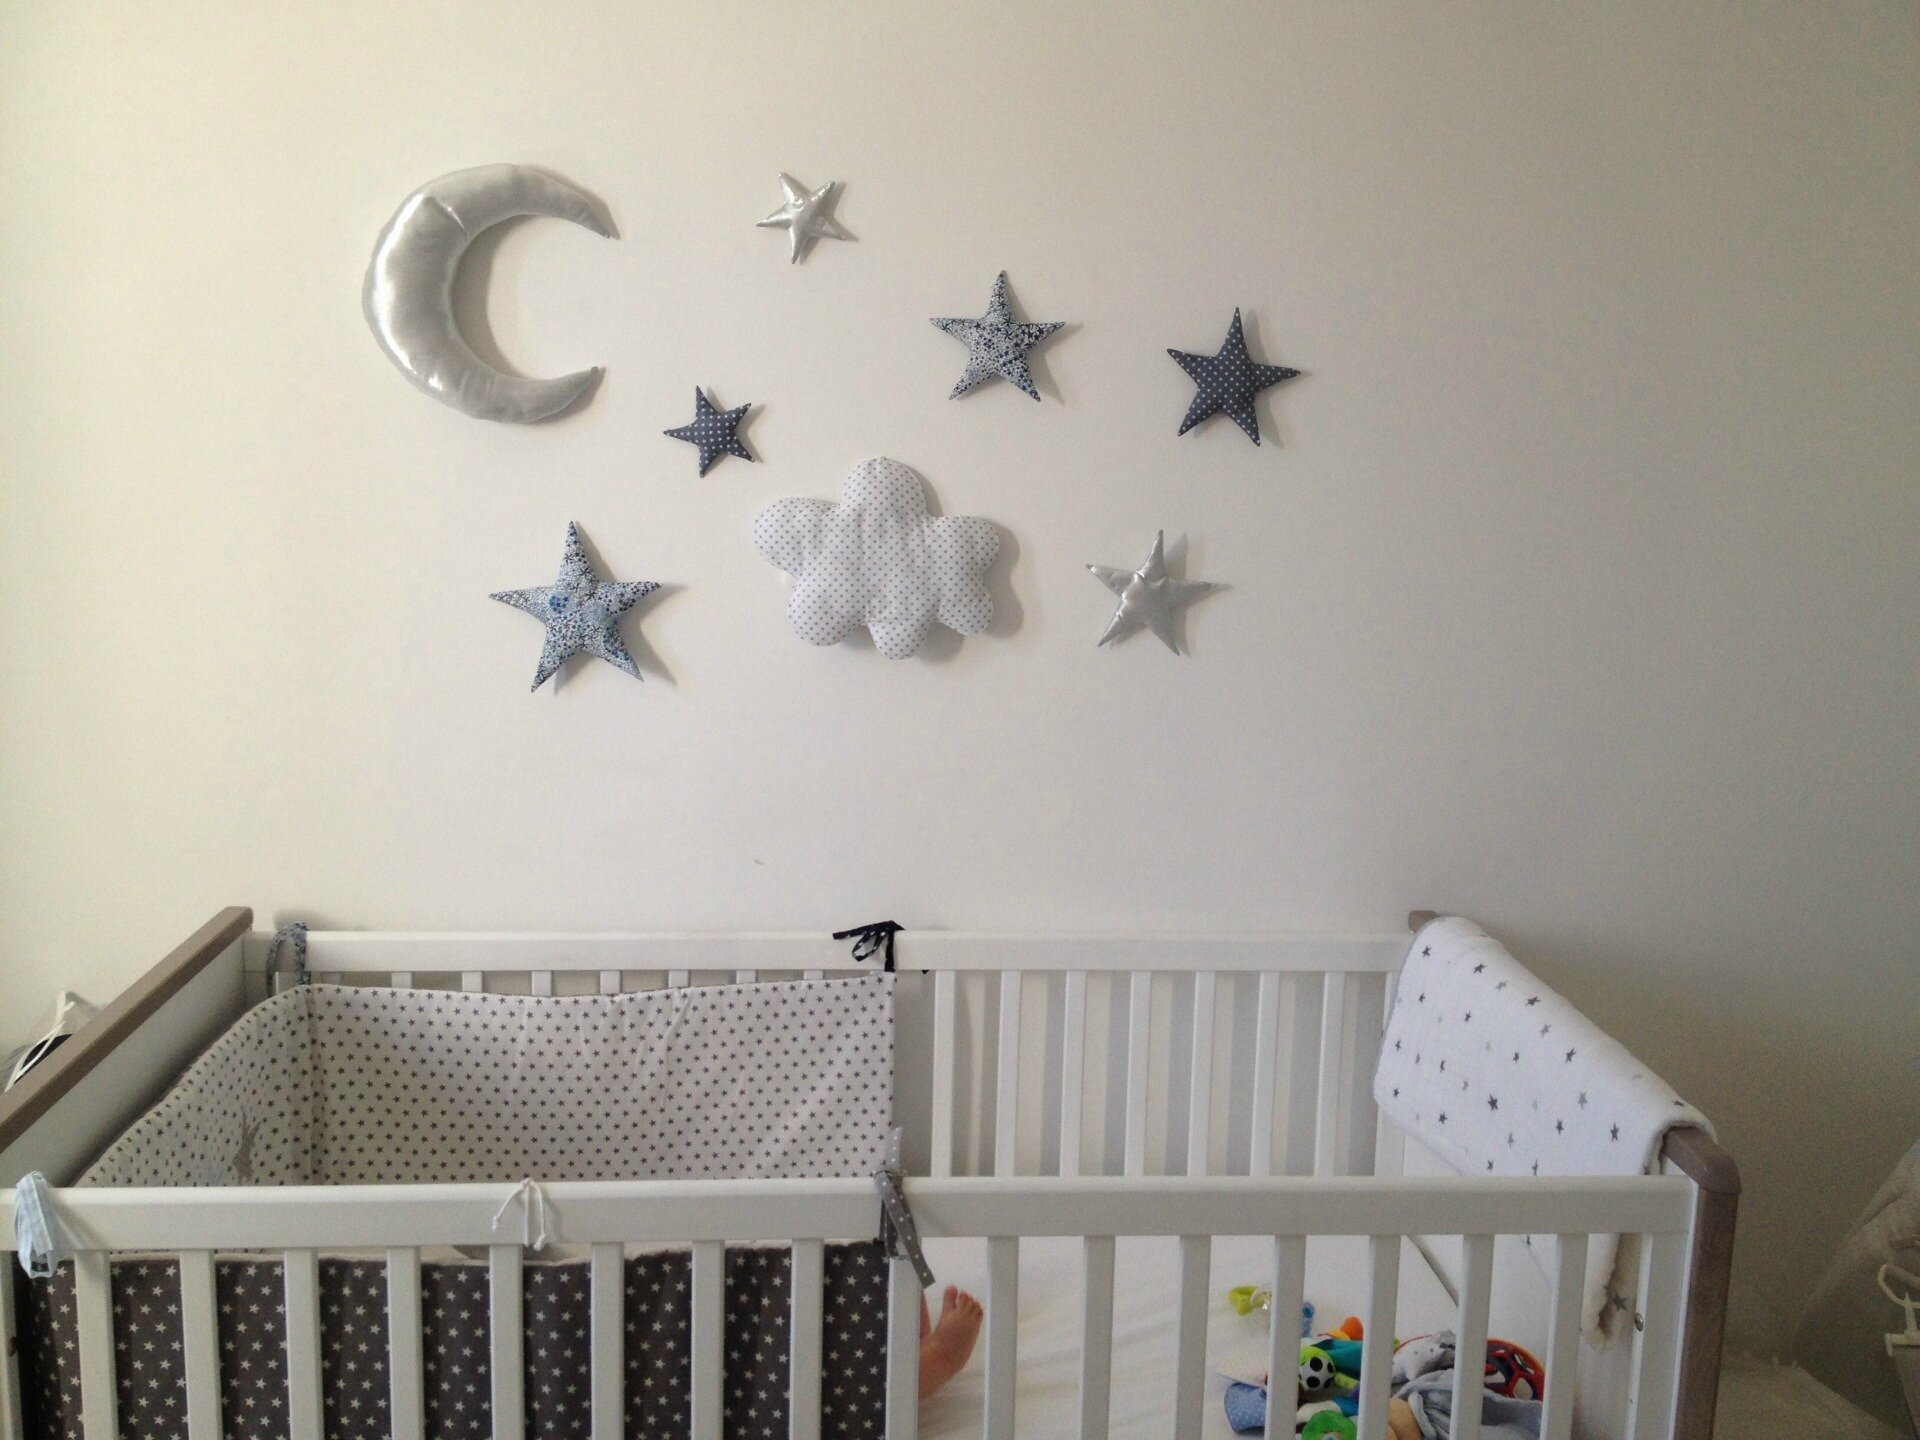 D coration murale lune toiles nuage photo de for Deco murale chambre bebe